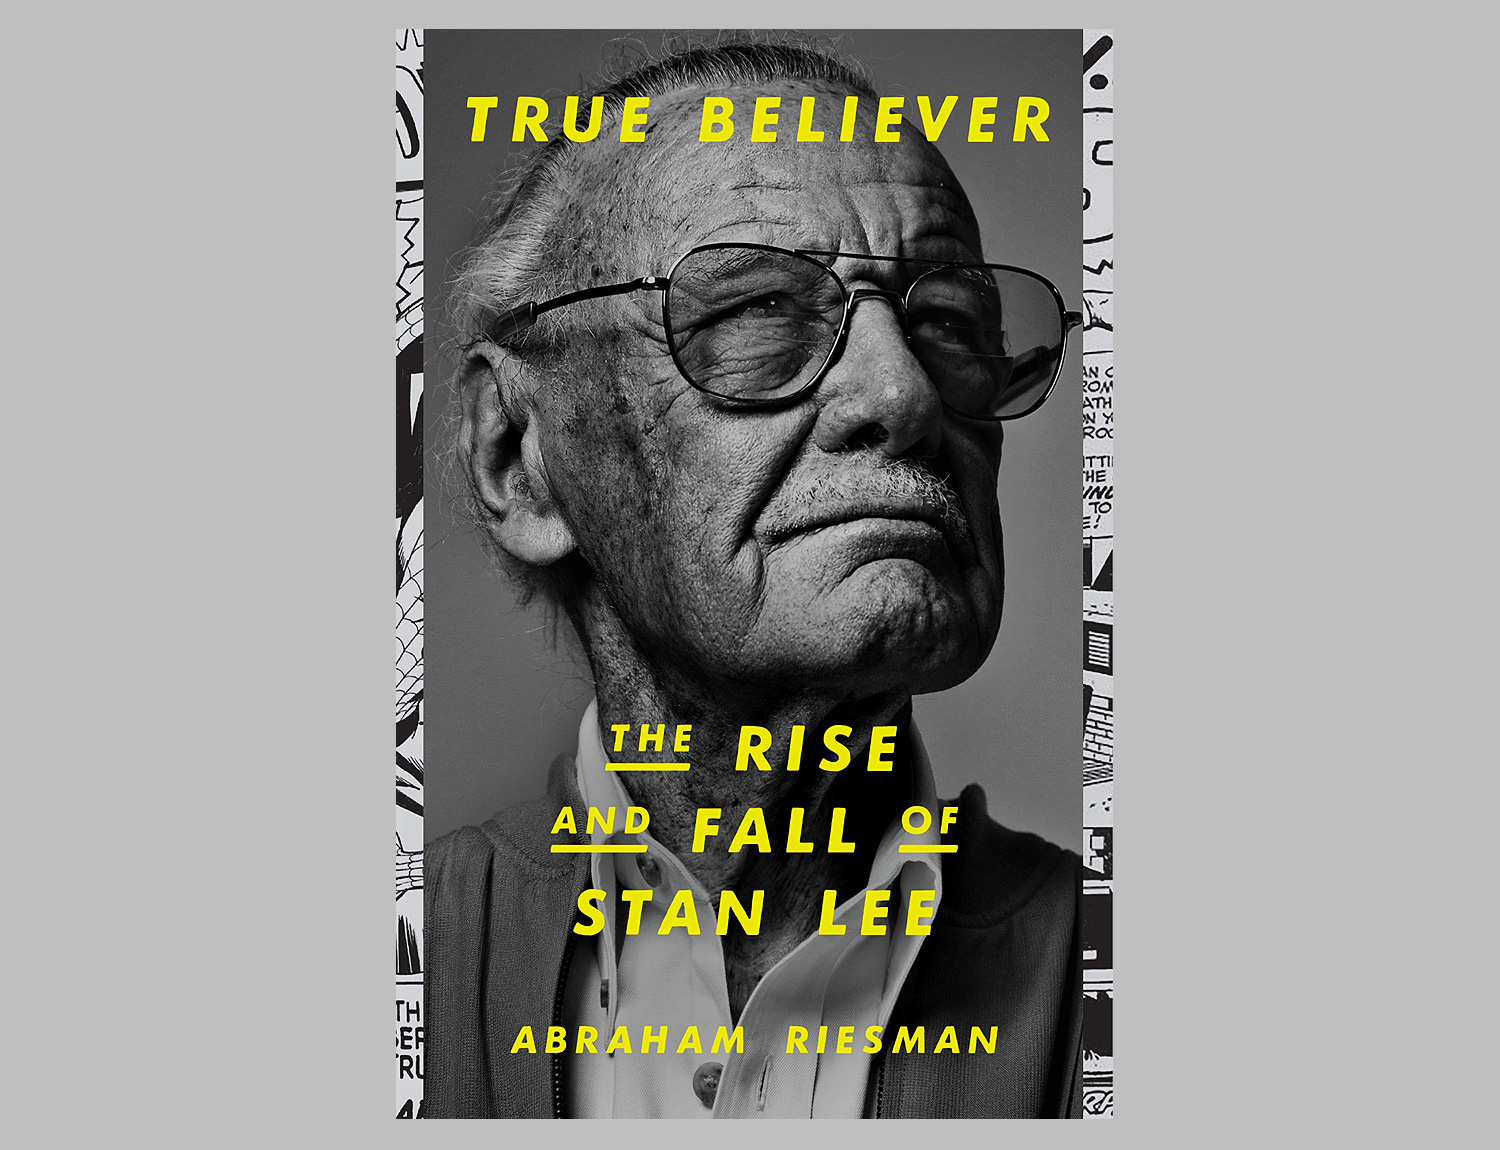 True Believer: The Rise and Fall of Stan Lee at werd.com